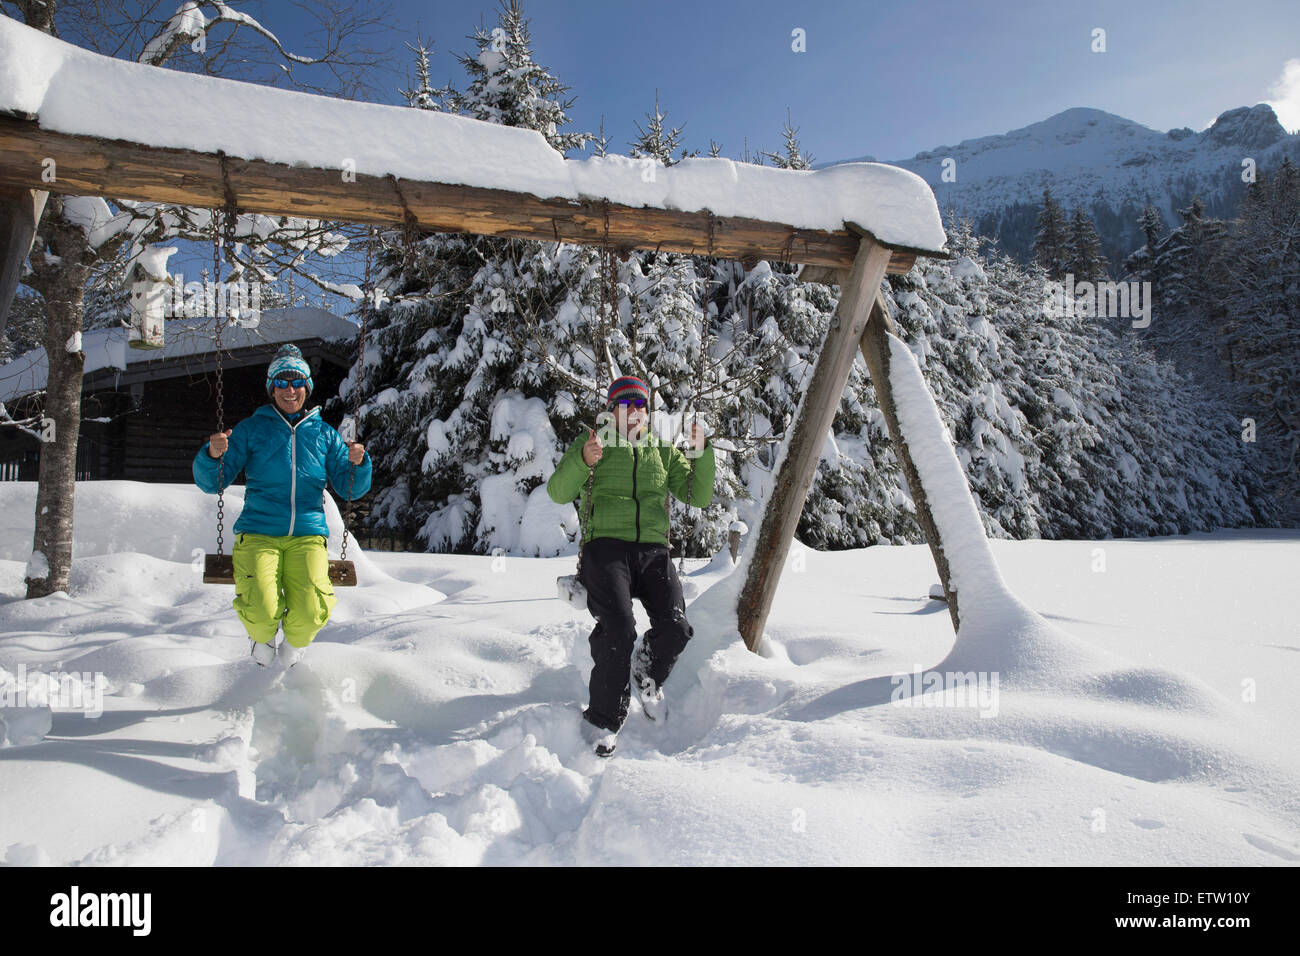 Germany, Bavaria, Inzell, couple sitting on swings in snow-covered landscape Stock Photo